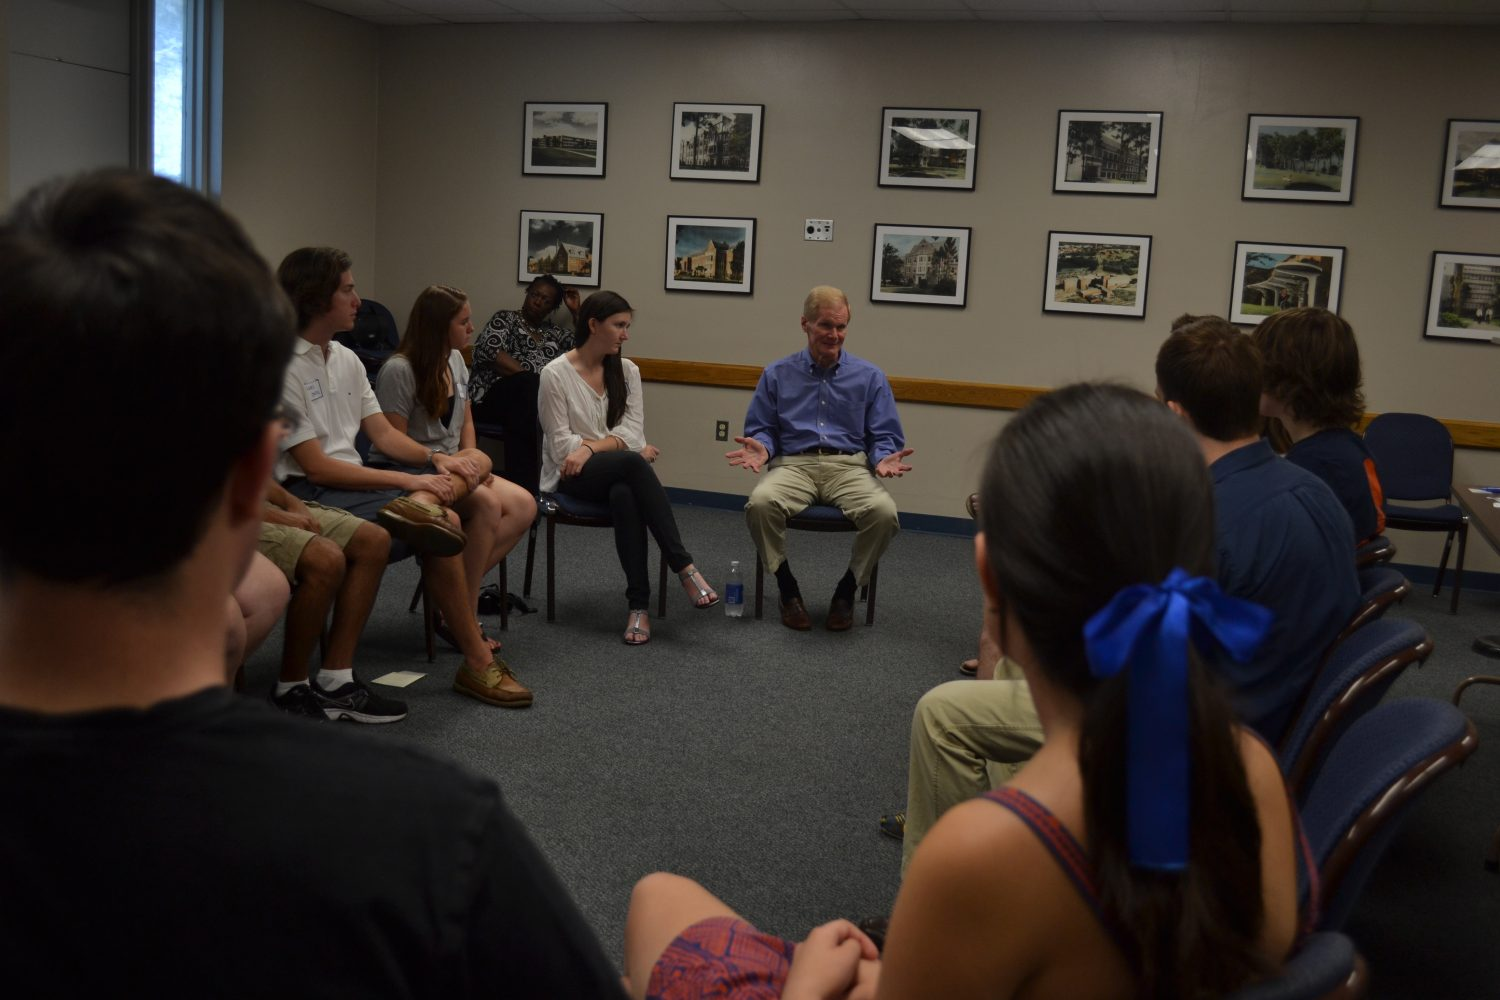 U.S. Senator Bill Nelson has a roundtable discussion with UF students on the rising cost of student loans.